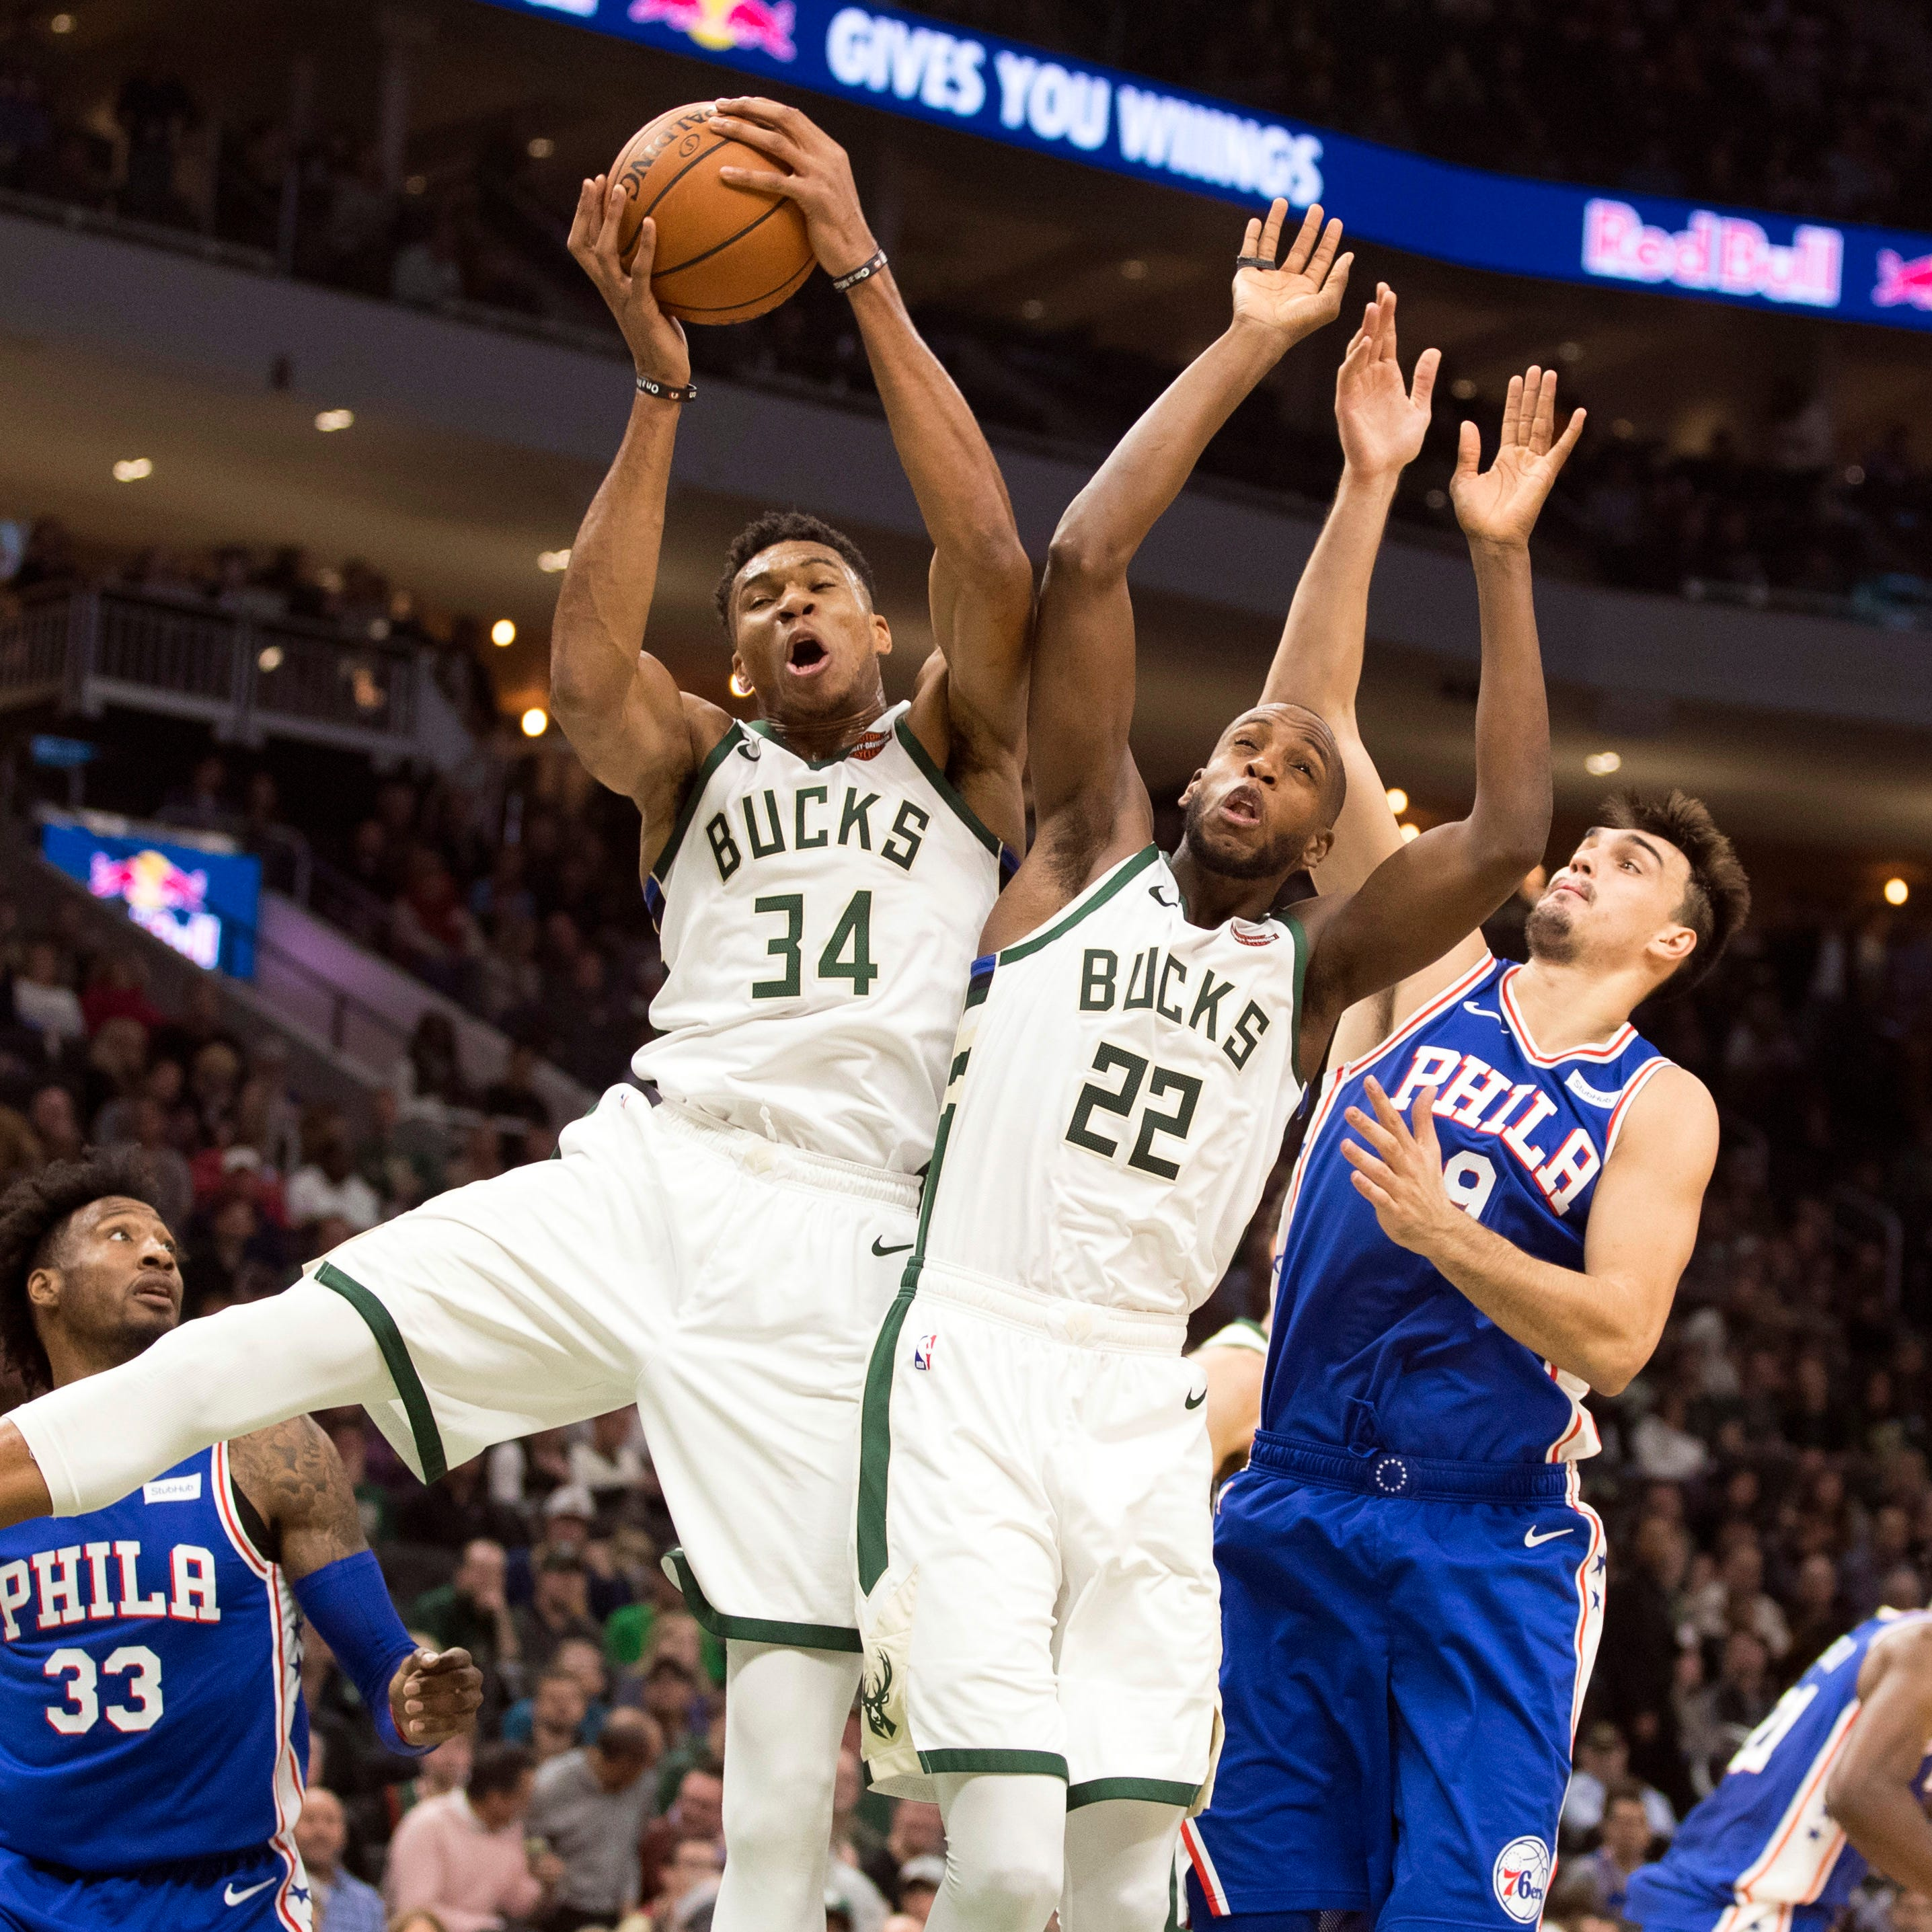 The Bucks and 76ers will get their first real look at each other in a Sunday showcase on ABC